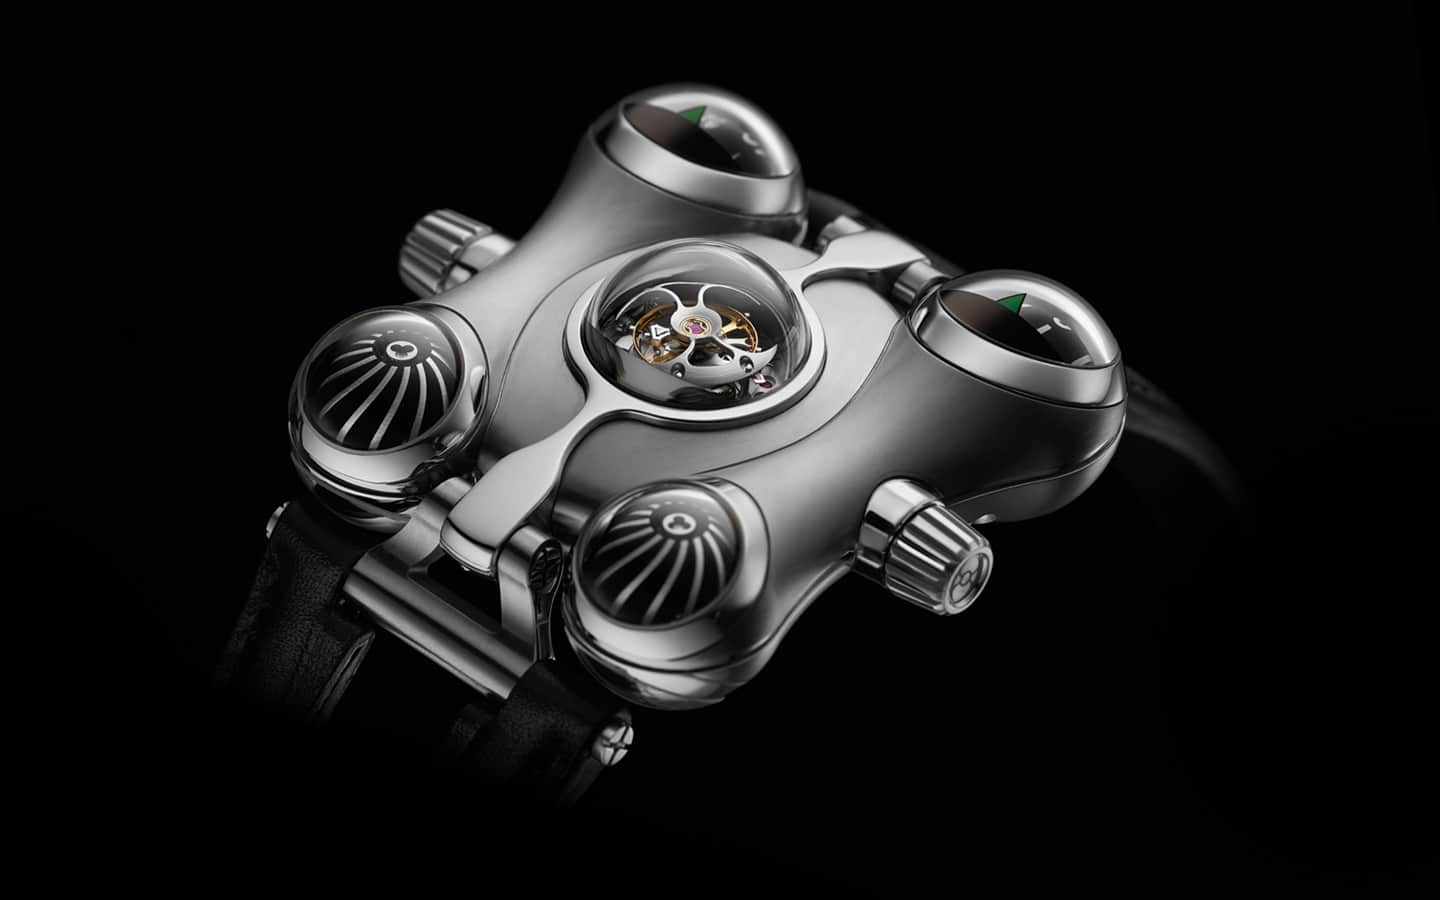 MB&F Horological Machine No.6 (HM6) Space Pirate Watch Exotic Design